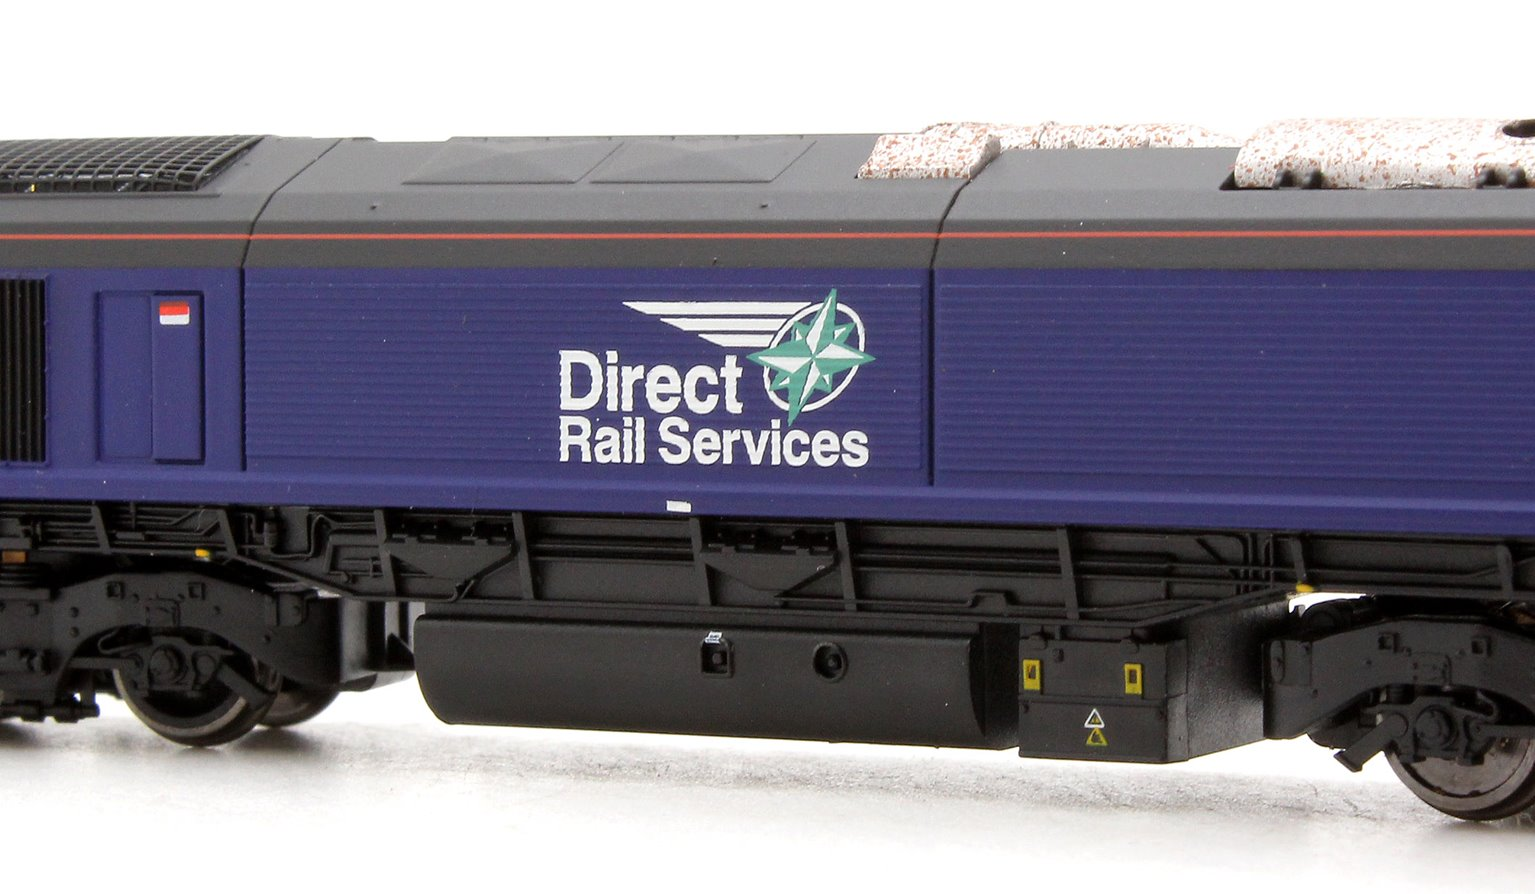 Class 66 66421 New DRS Livery - DCC Fitted